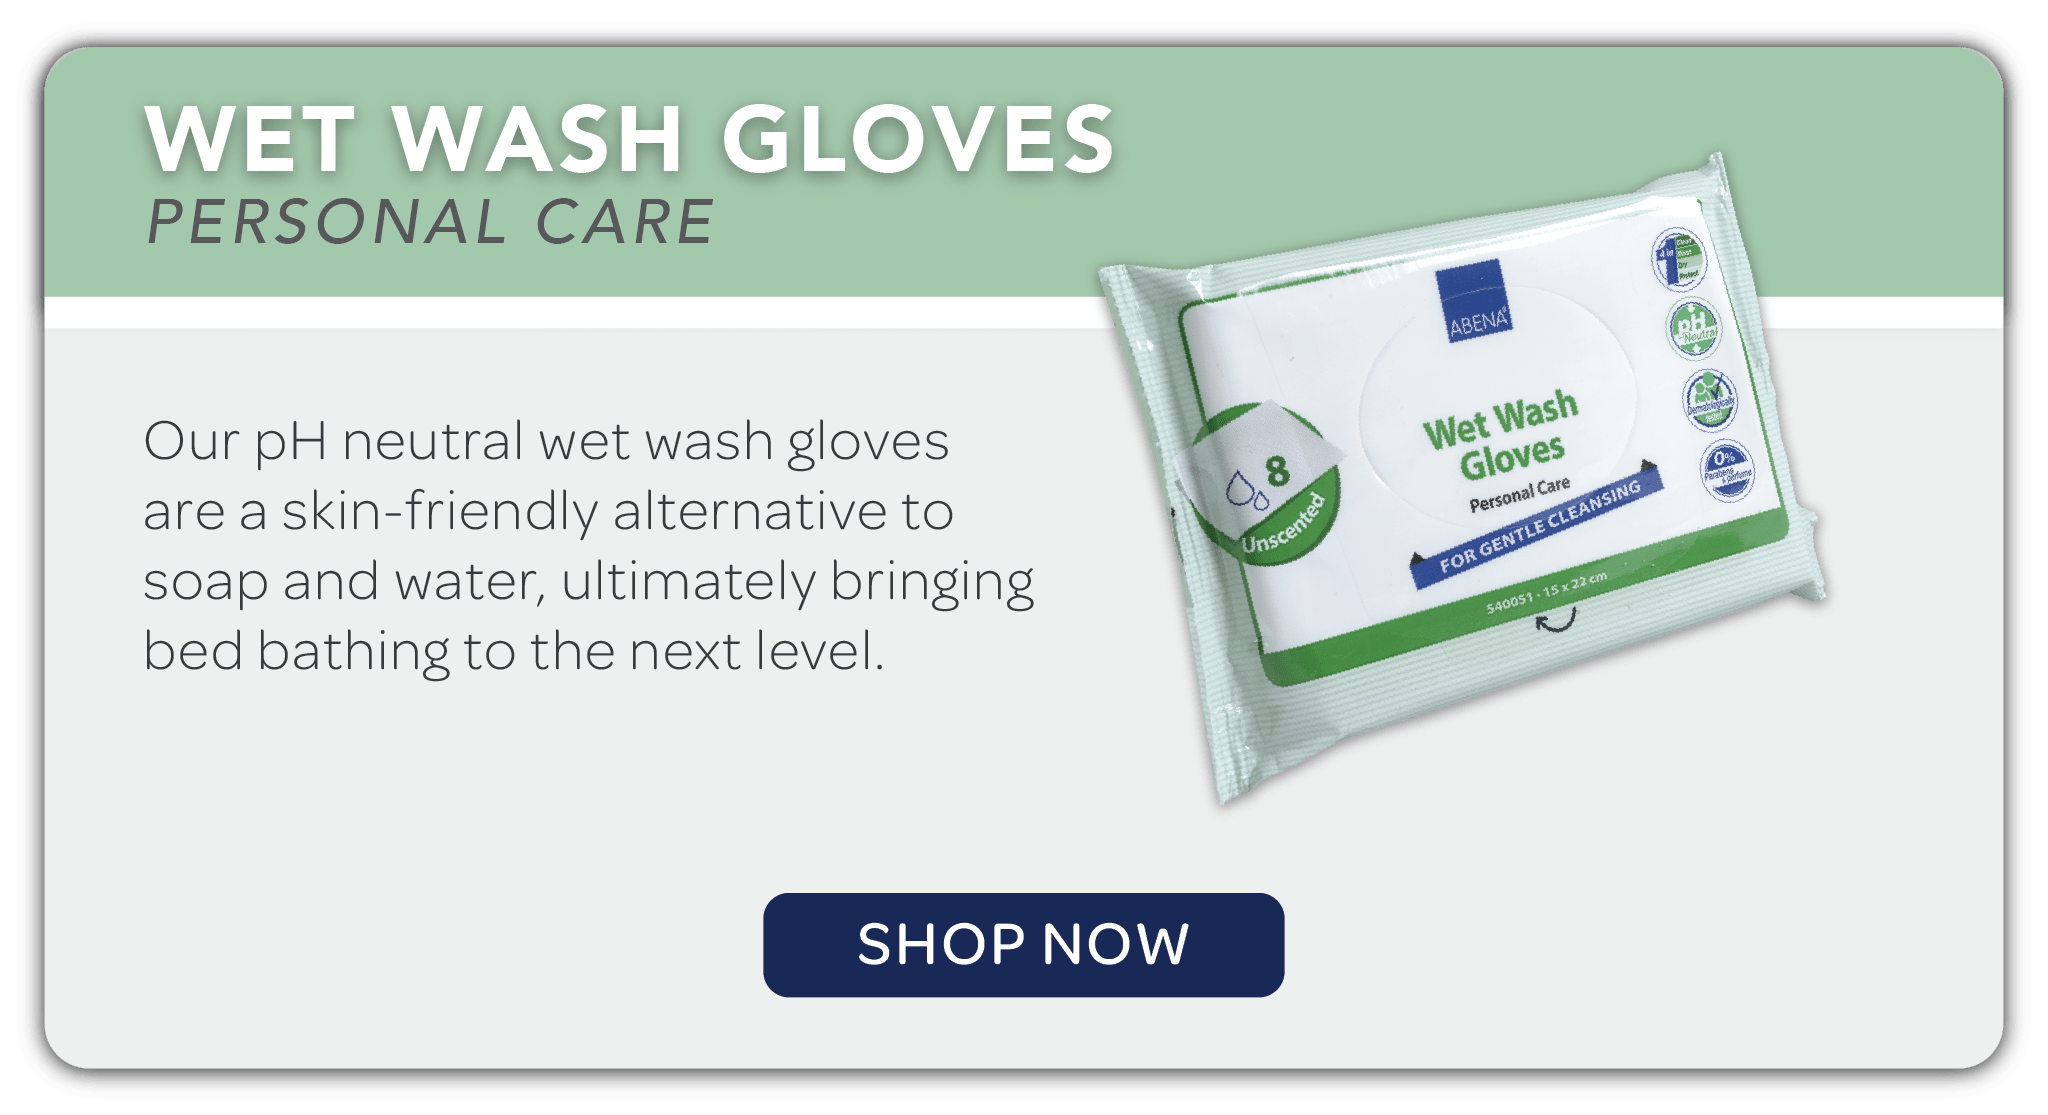 Wet Wash Gloves